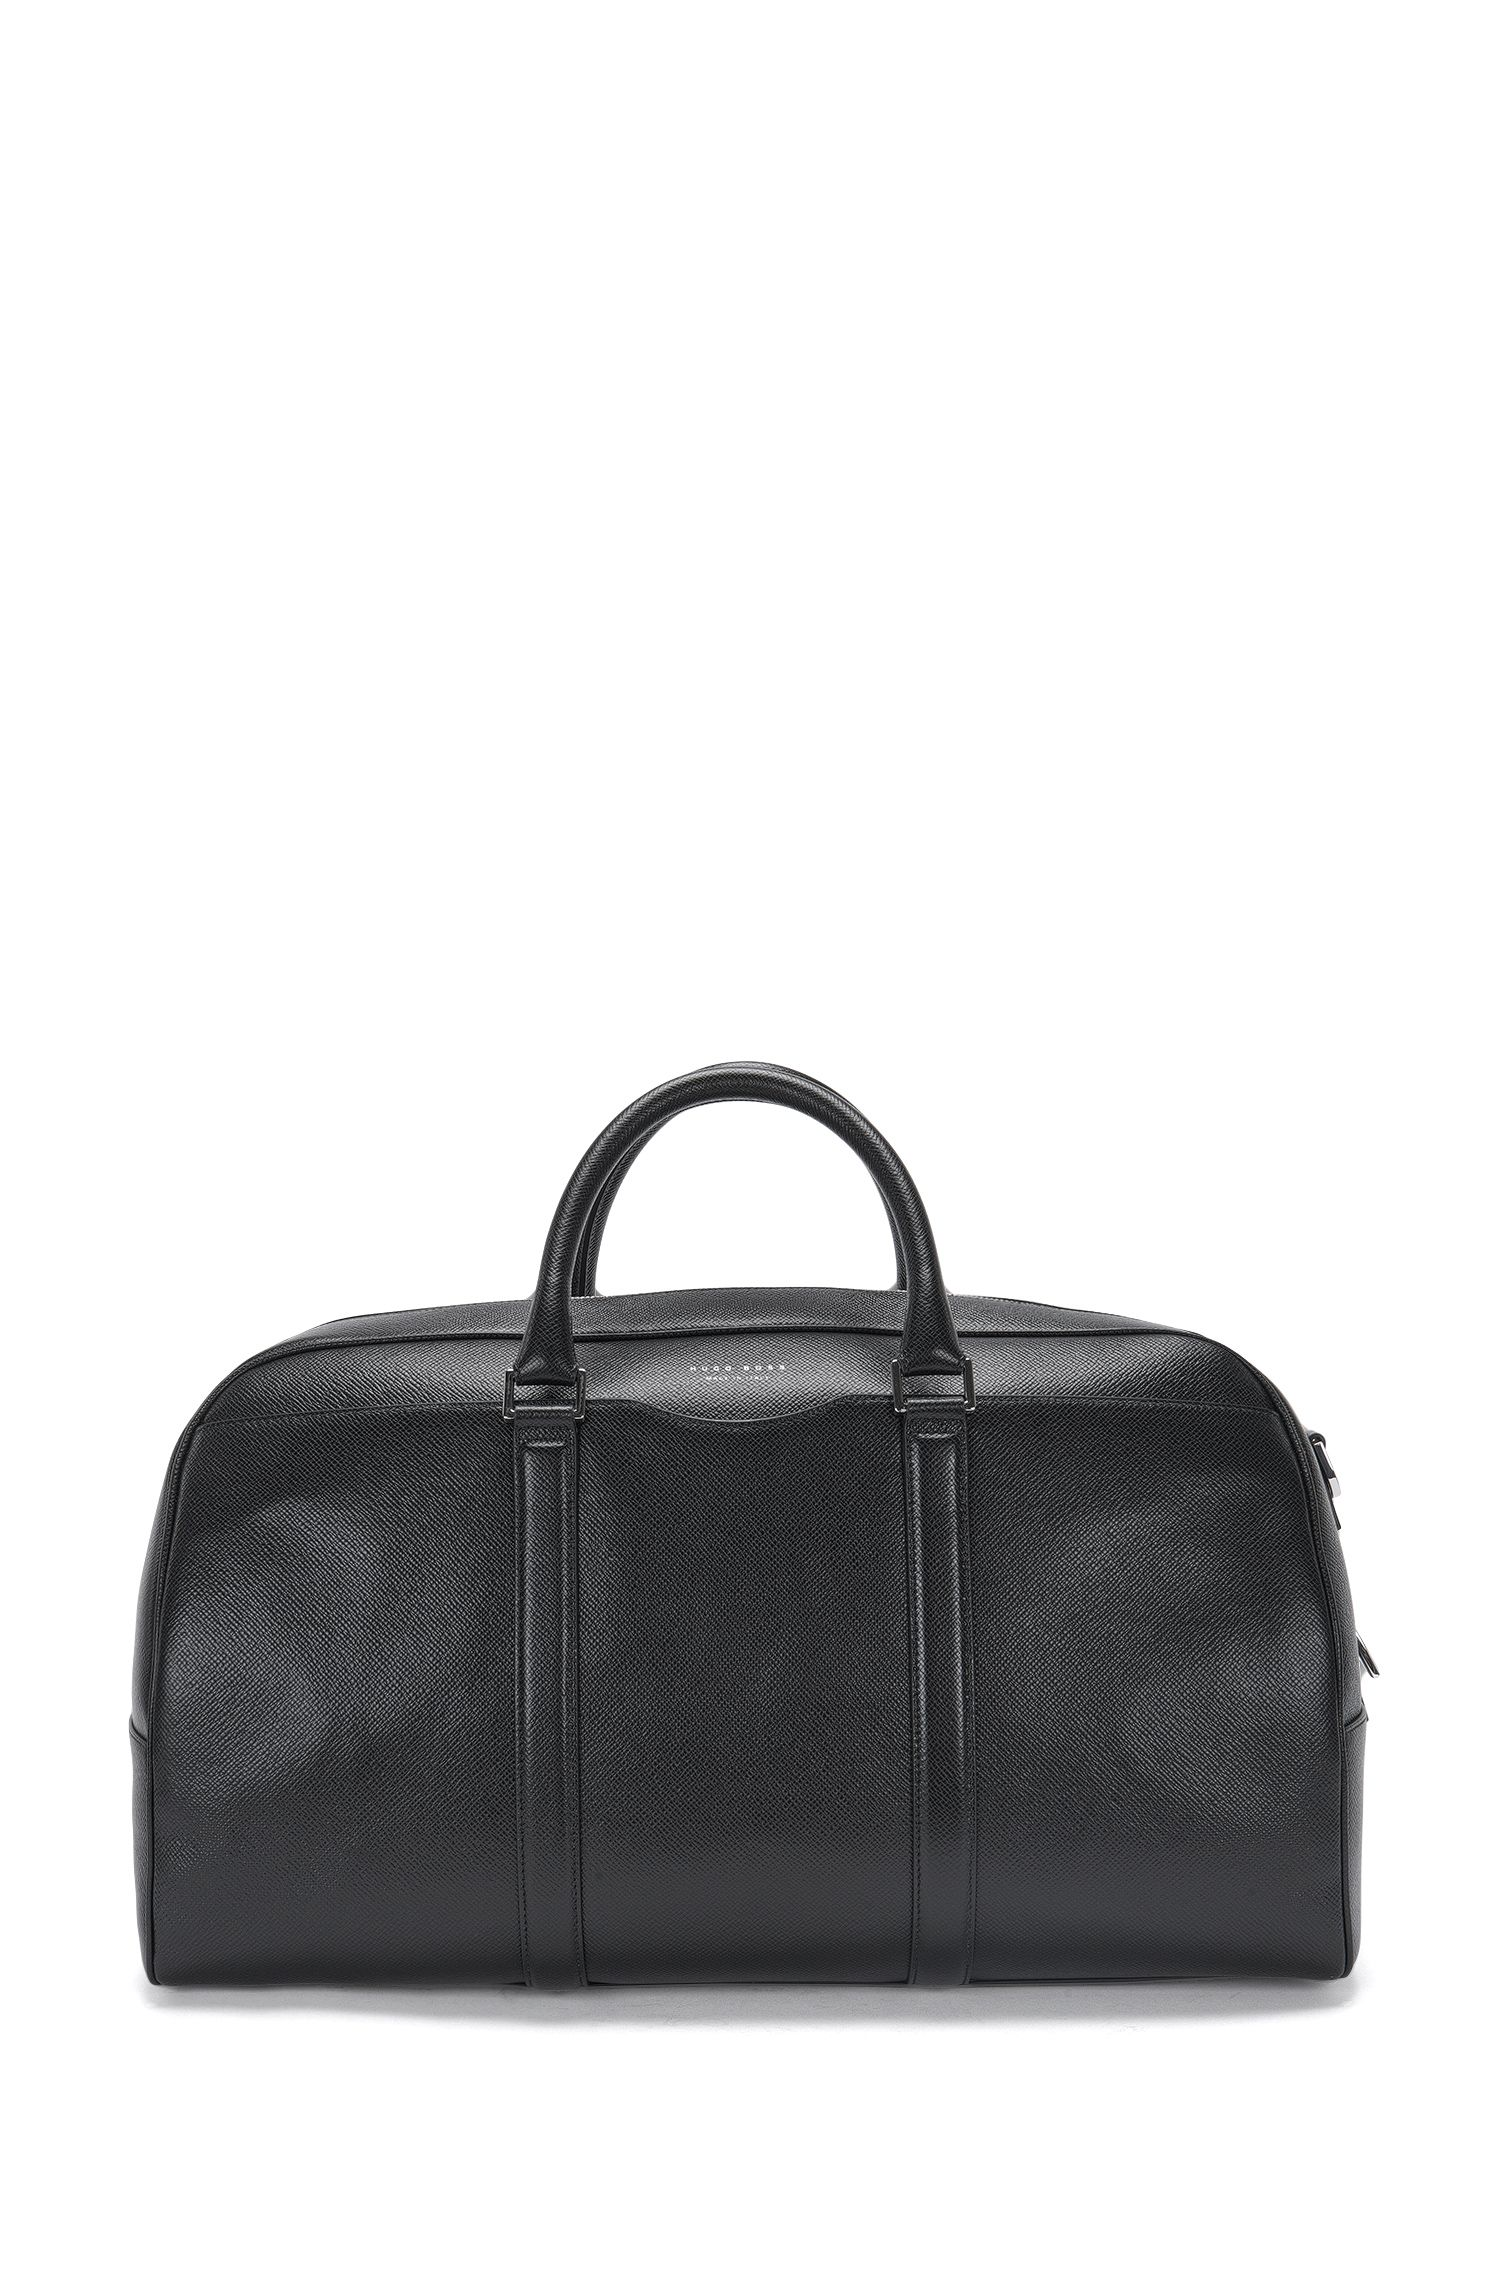 'Signature S Hold' | Calfskin Weekender Bag, Detachable Shoulder Strap